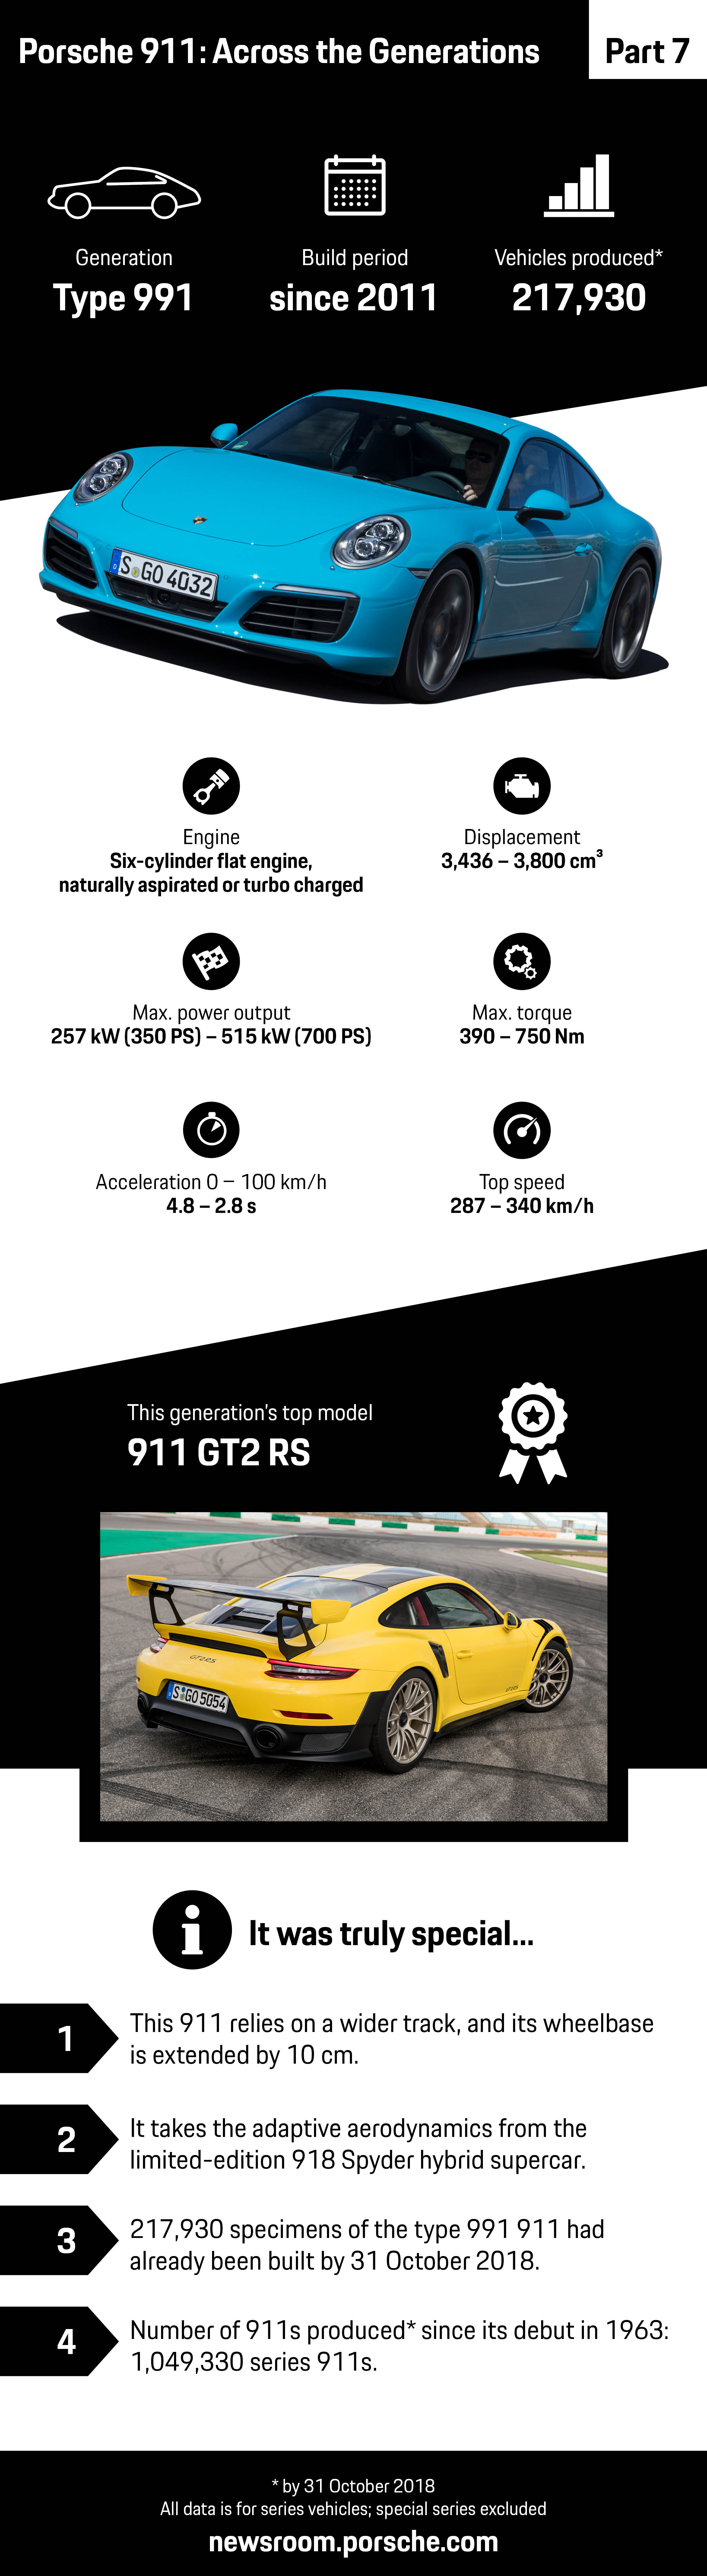 Porsche 911: Across the Generations – part 7, infographic, 2018, Porsche AG